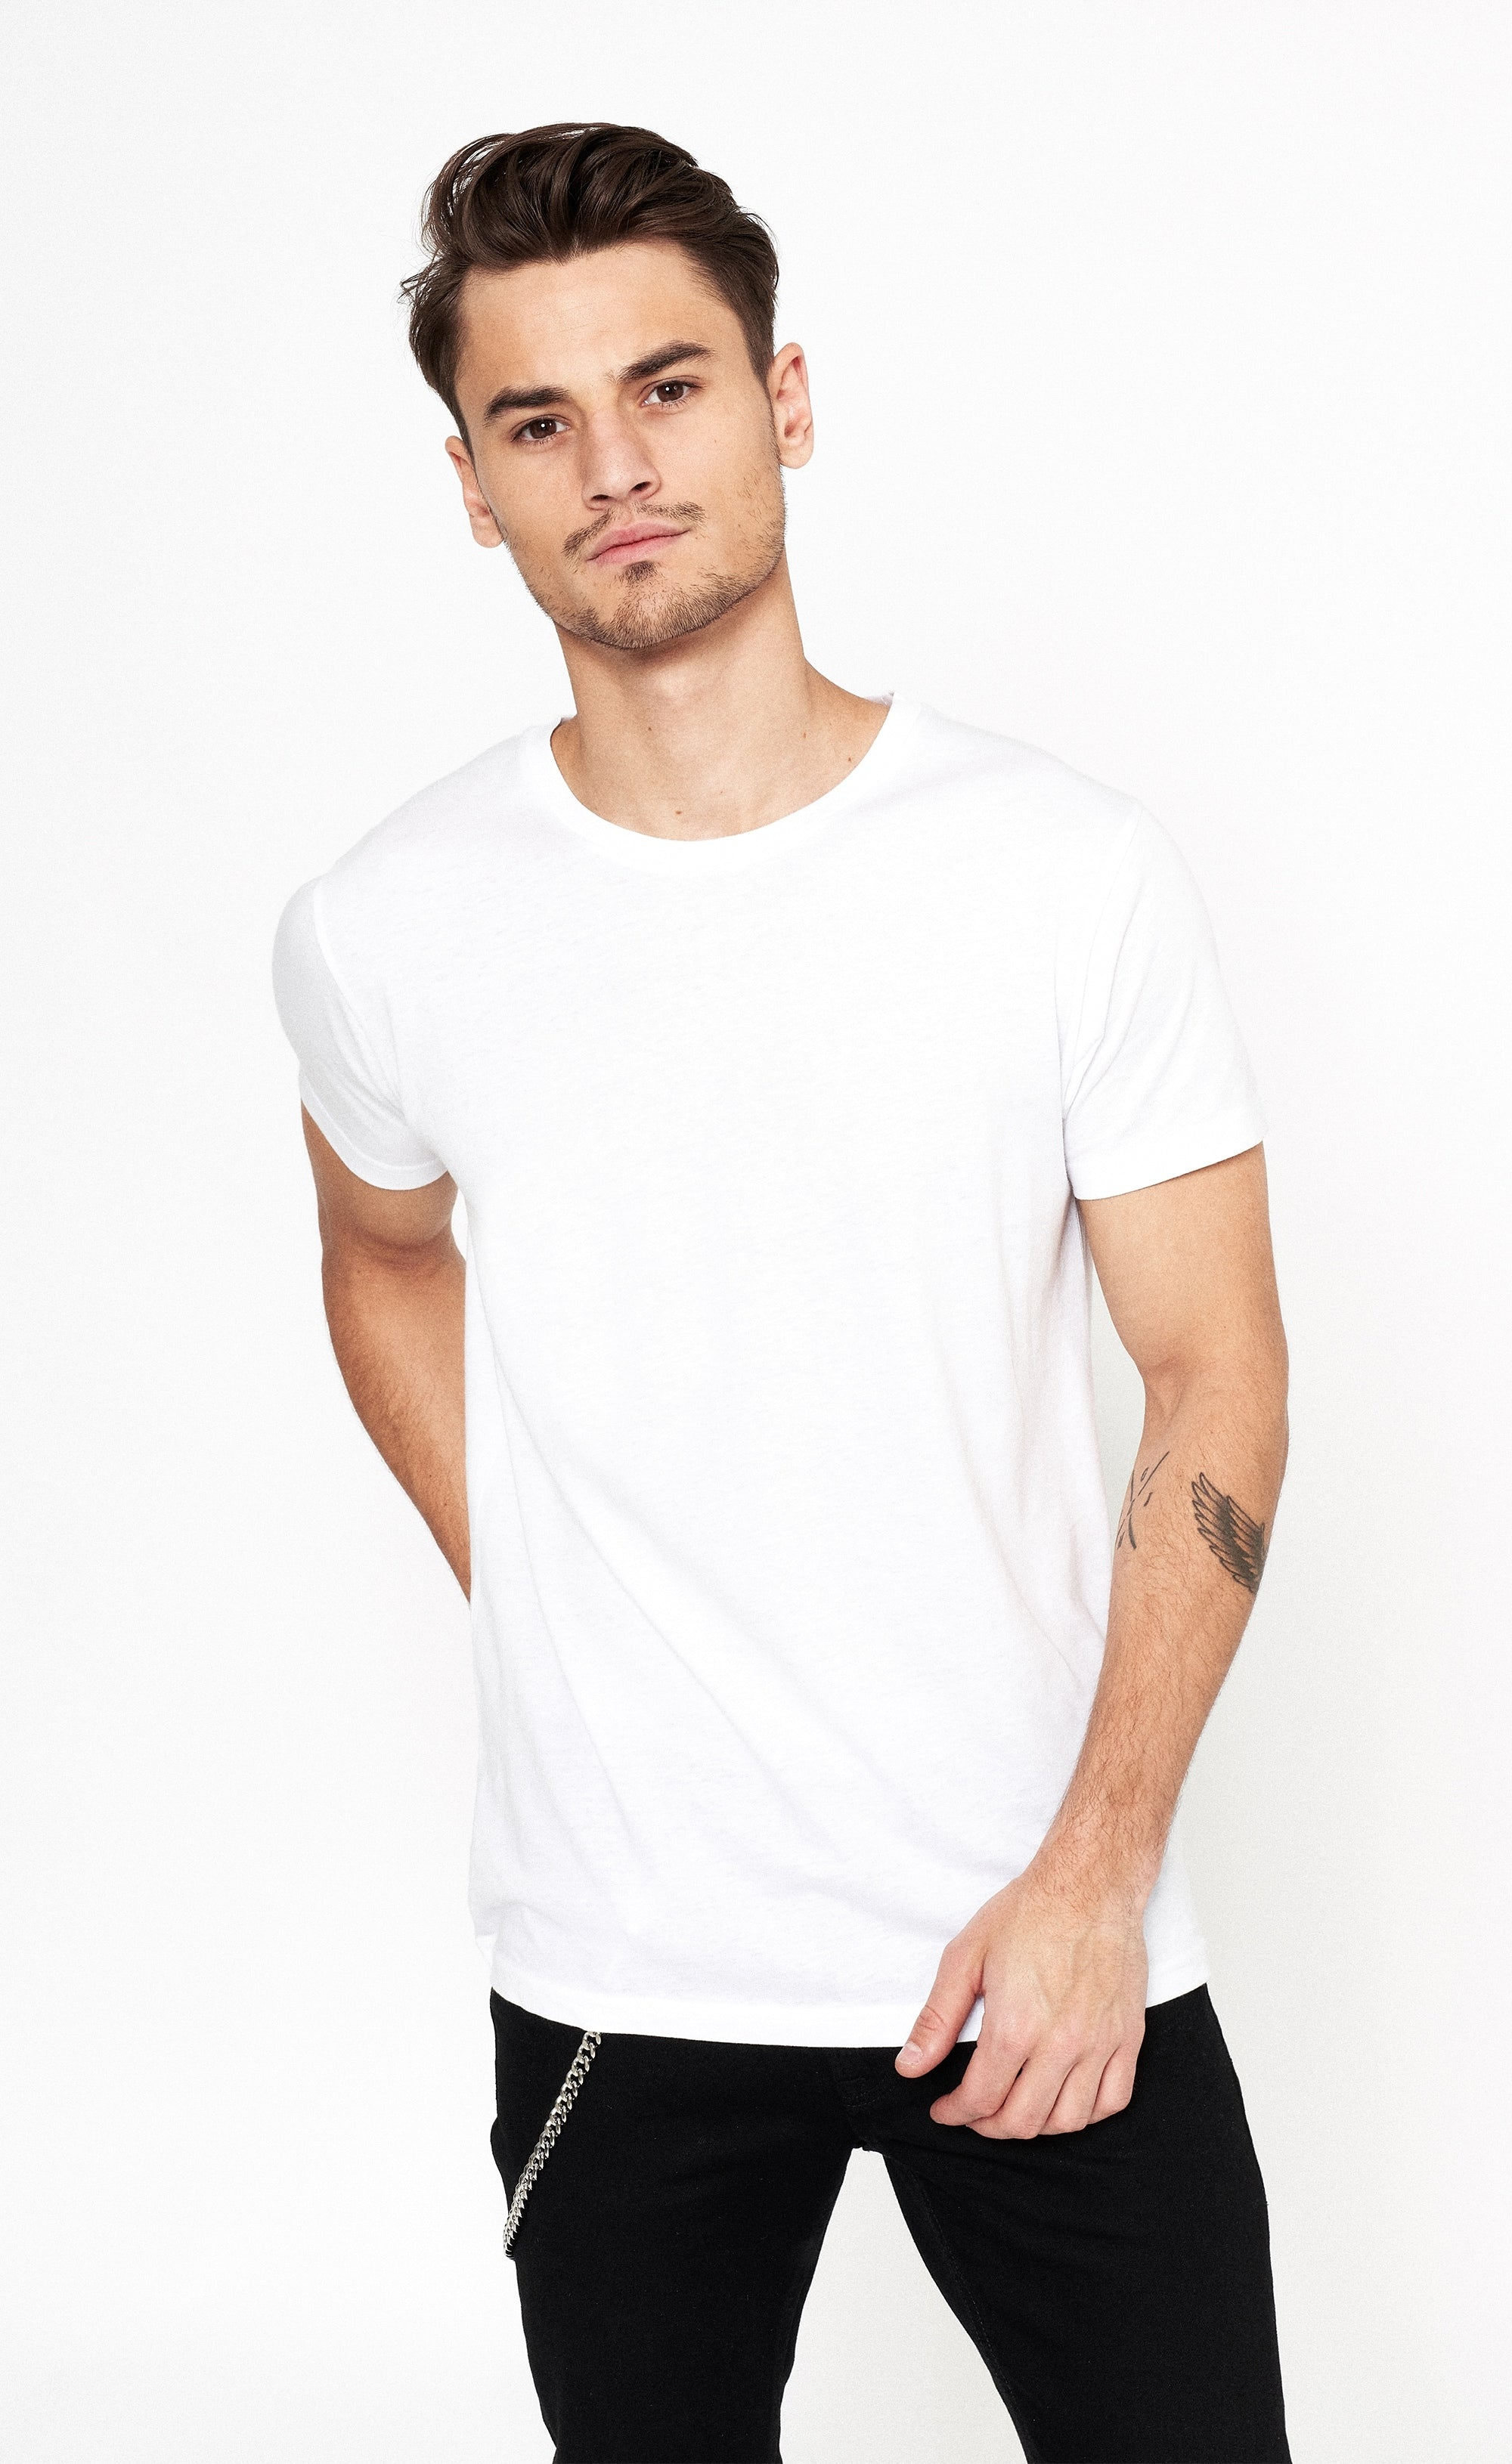 CLASSIC SHIRT - WHITE - Forage-Clothing